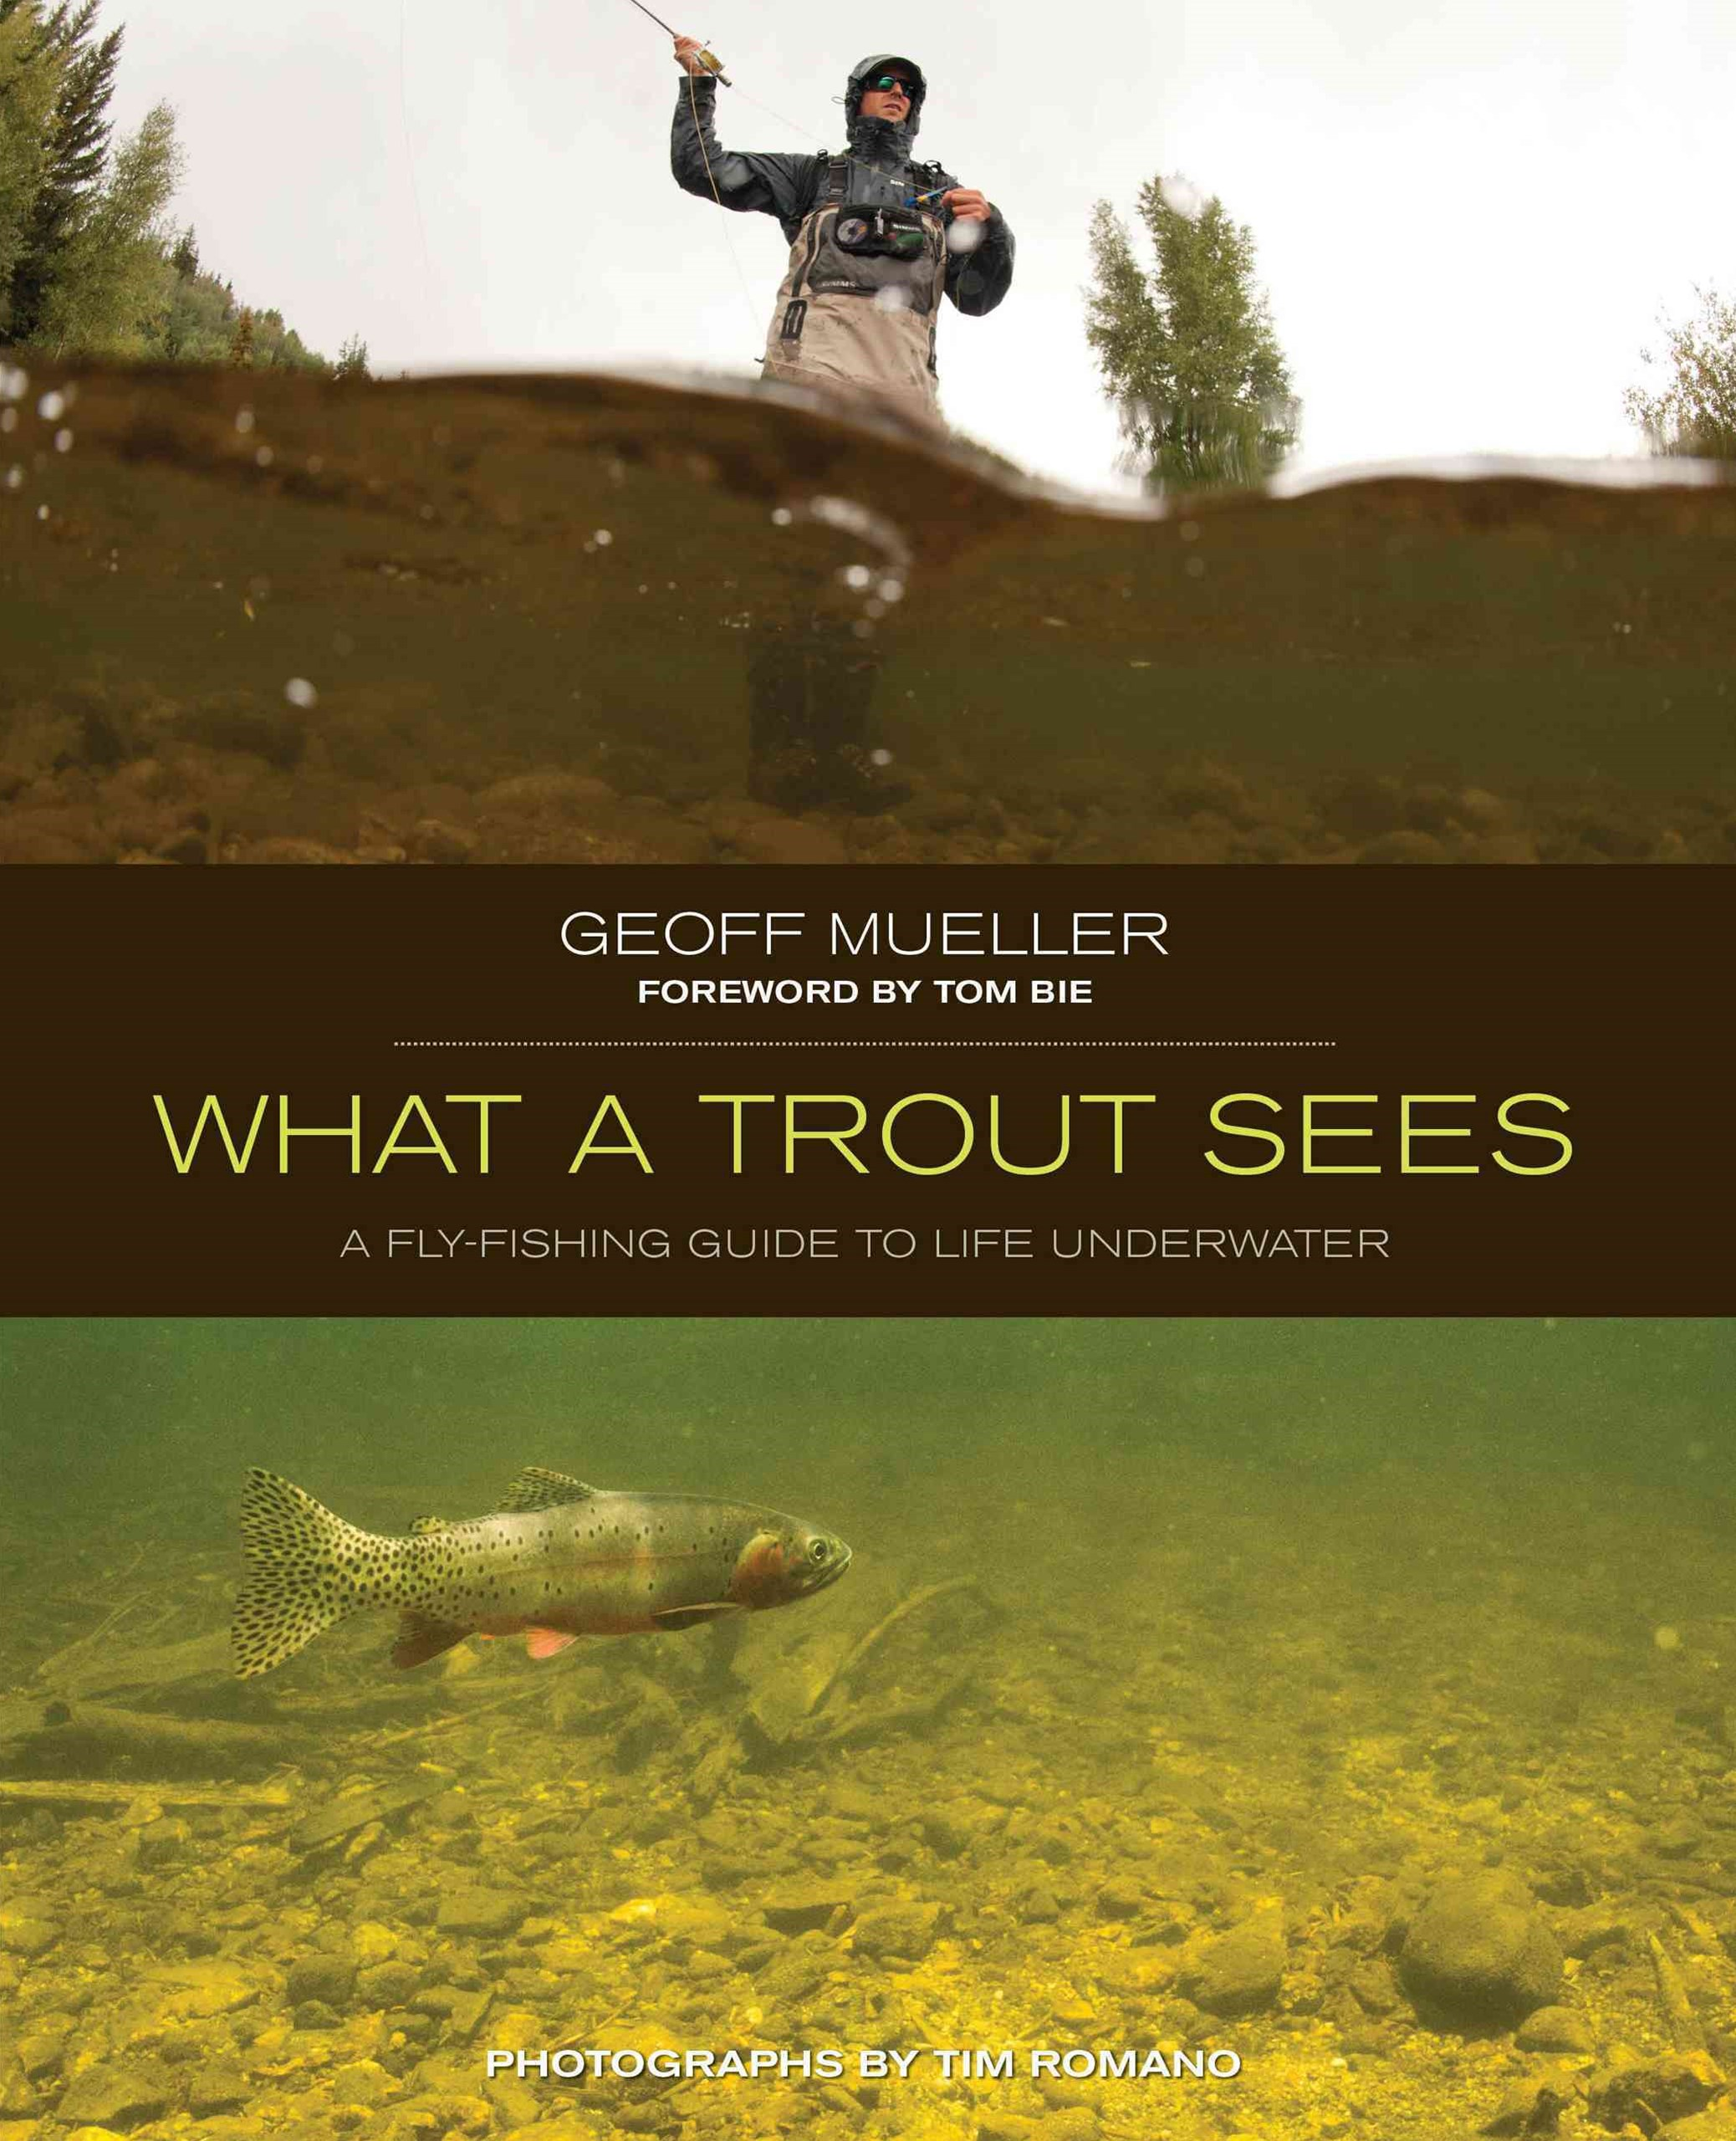 What a Trout Sees